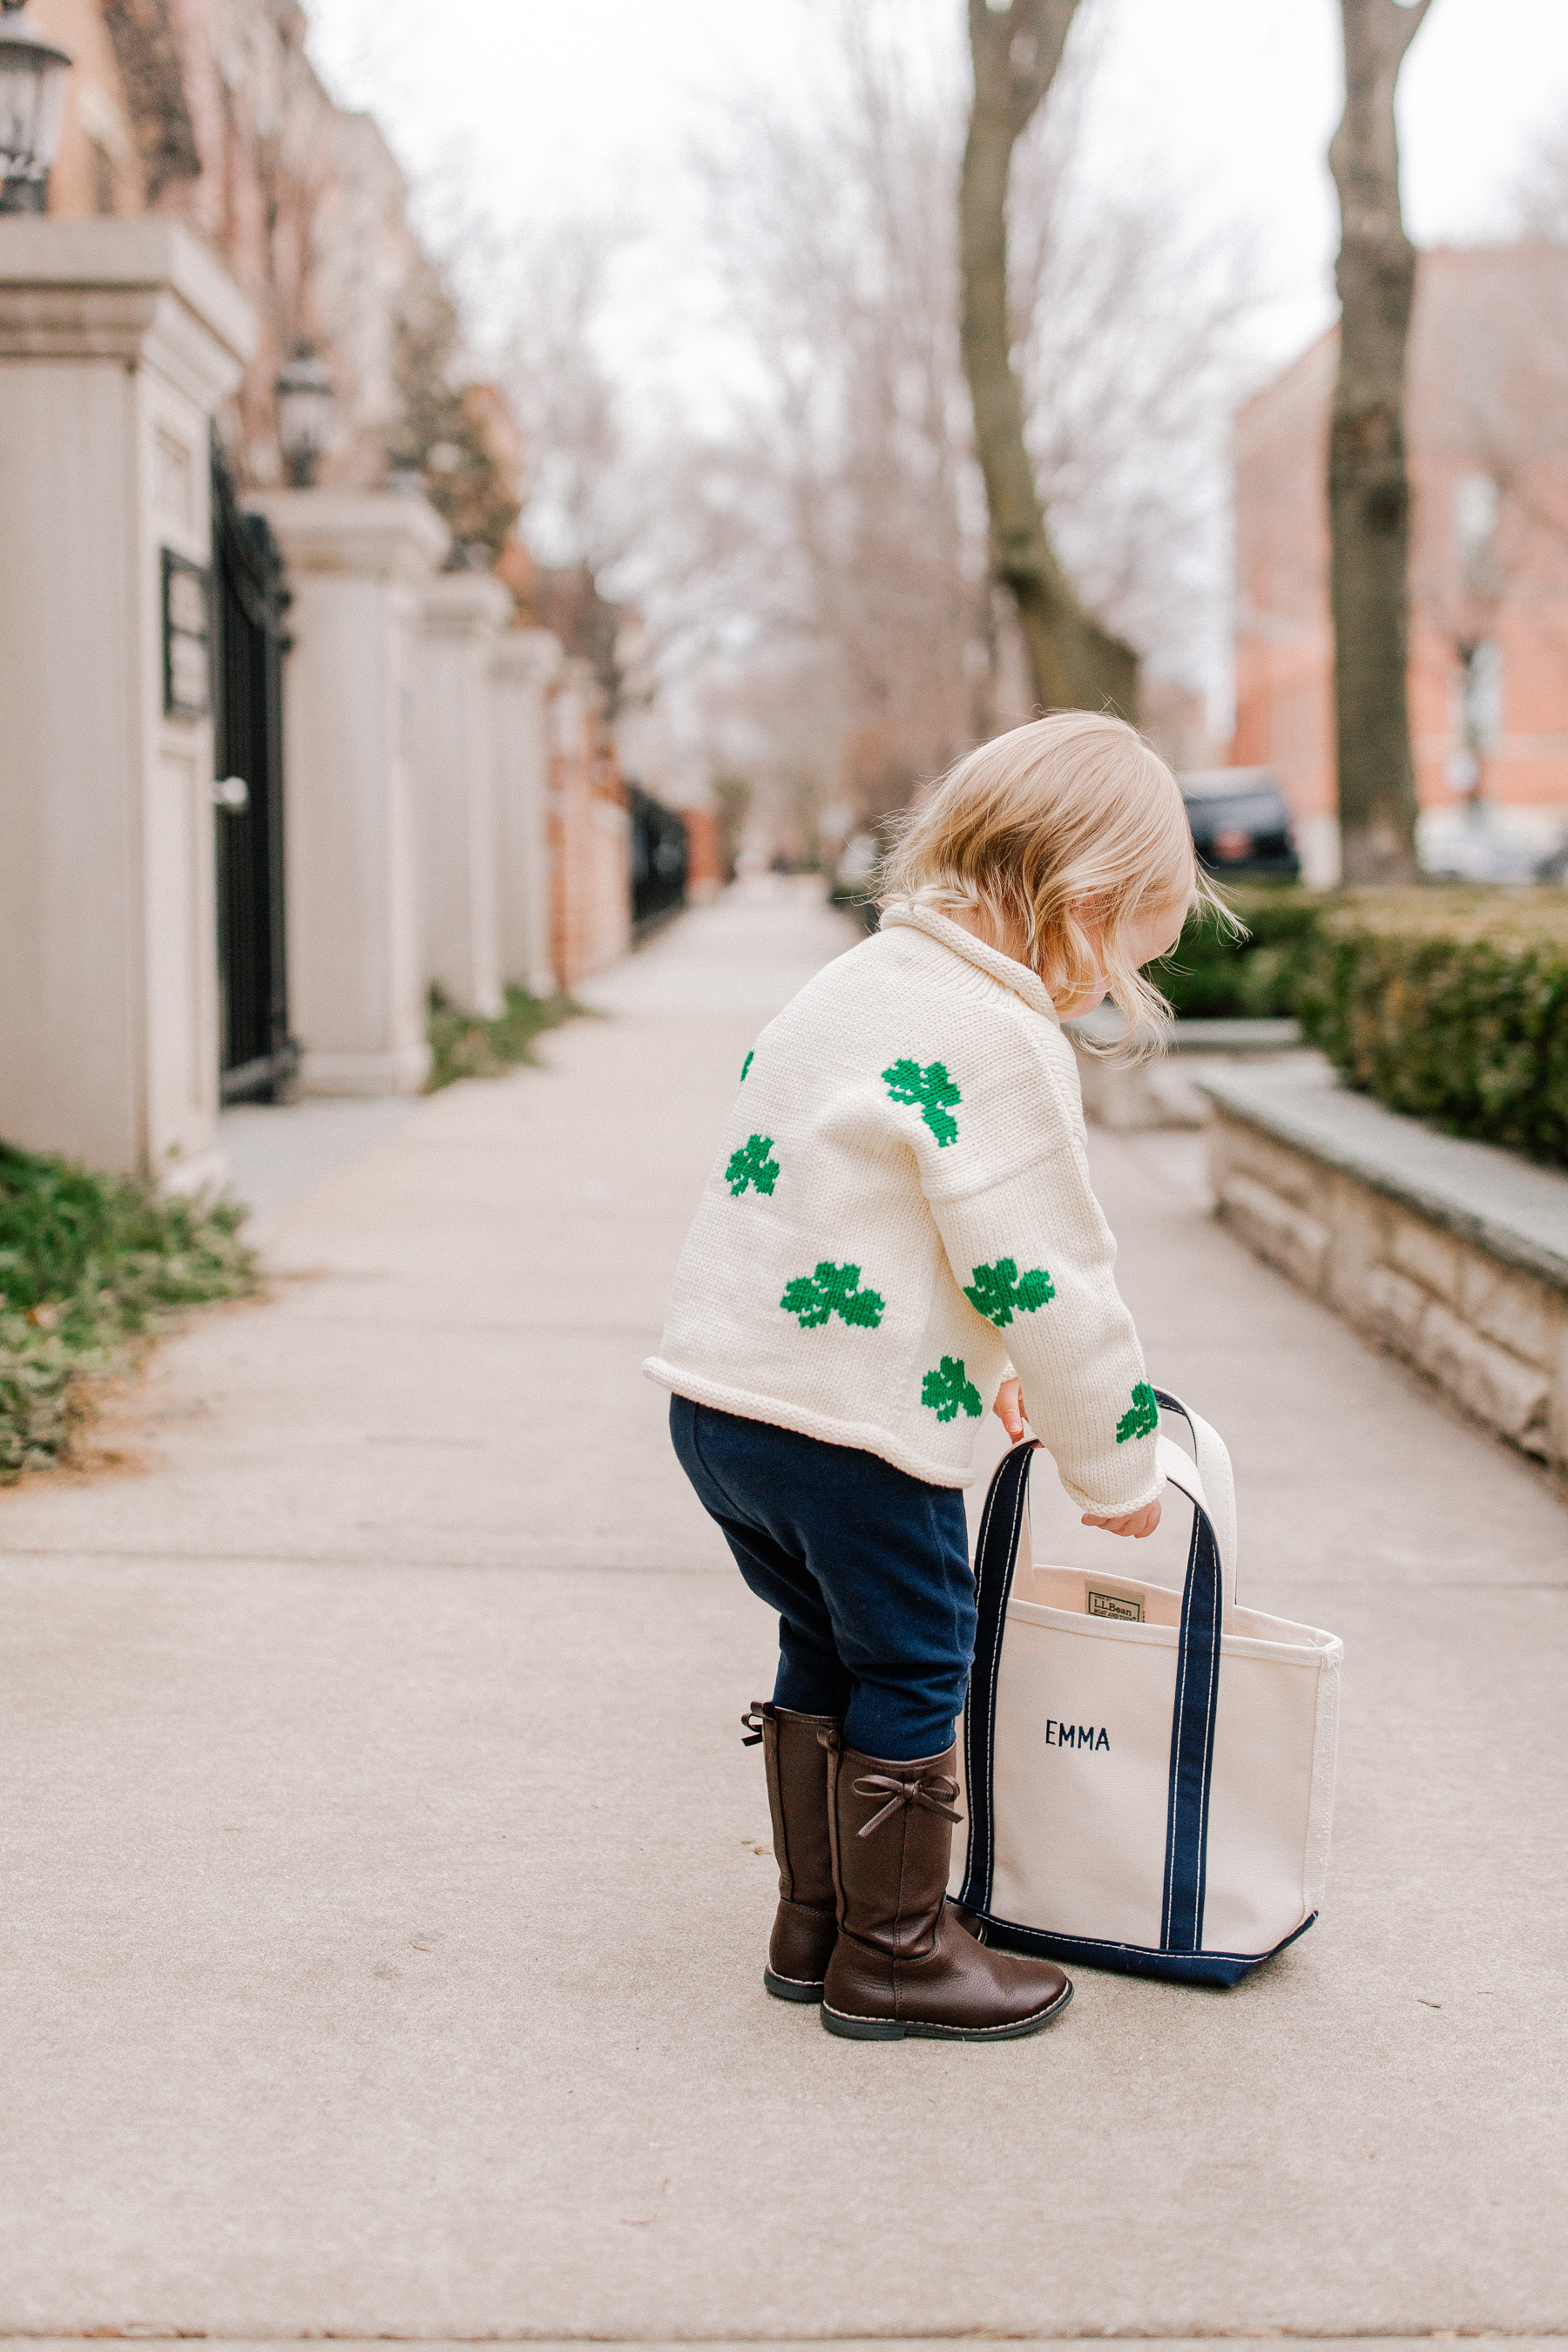 Emma is featuring a Claver Shamrock Sweater / L.L. Bean Tote c/o / Gap Kids Jeggings and Boots